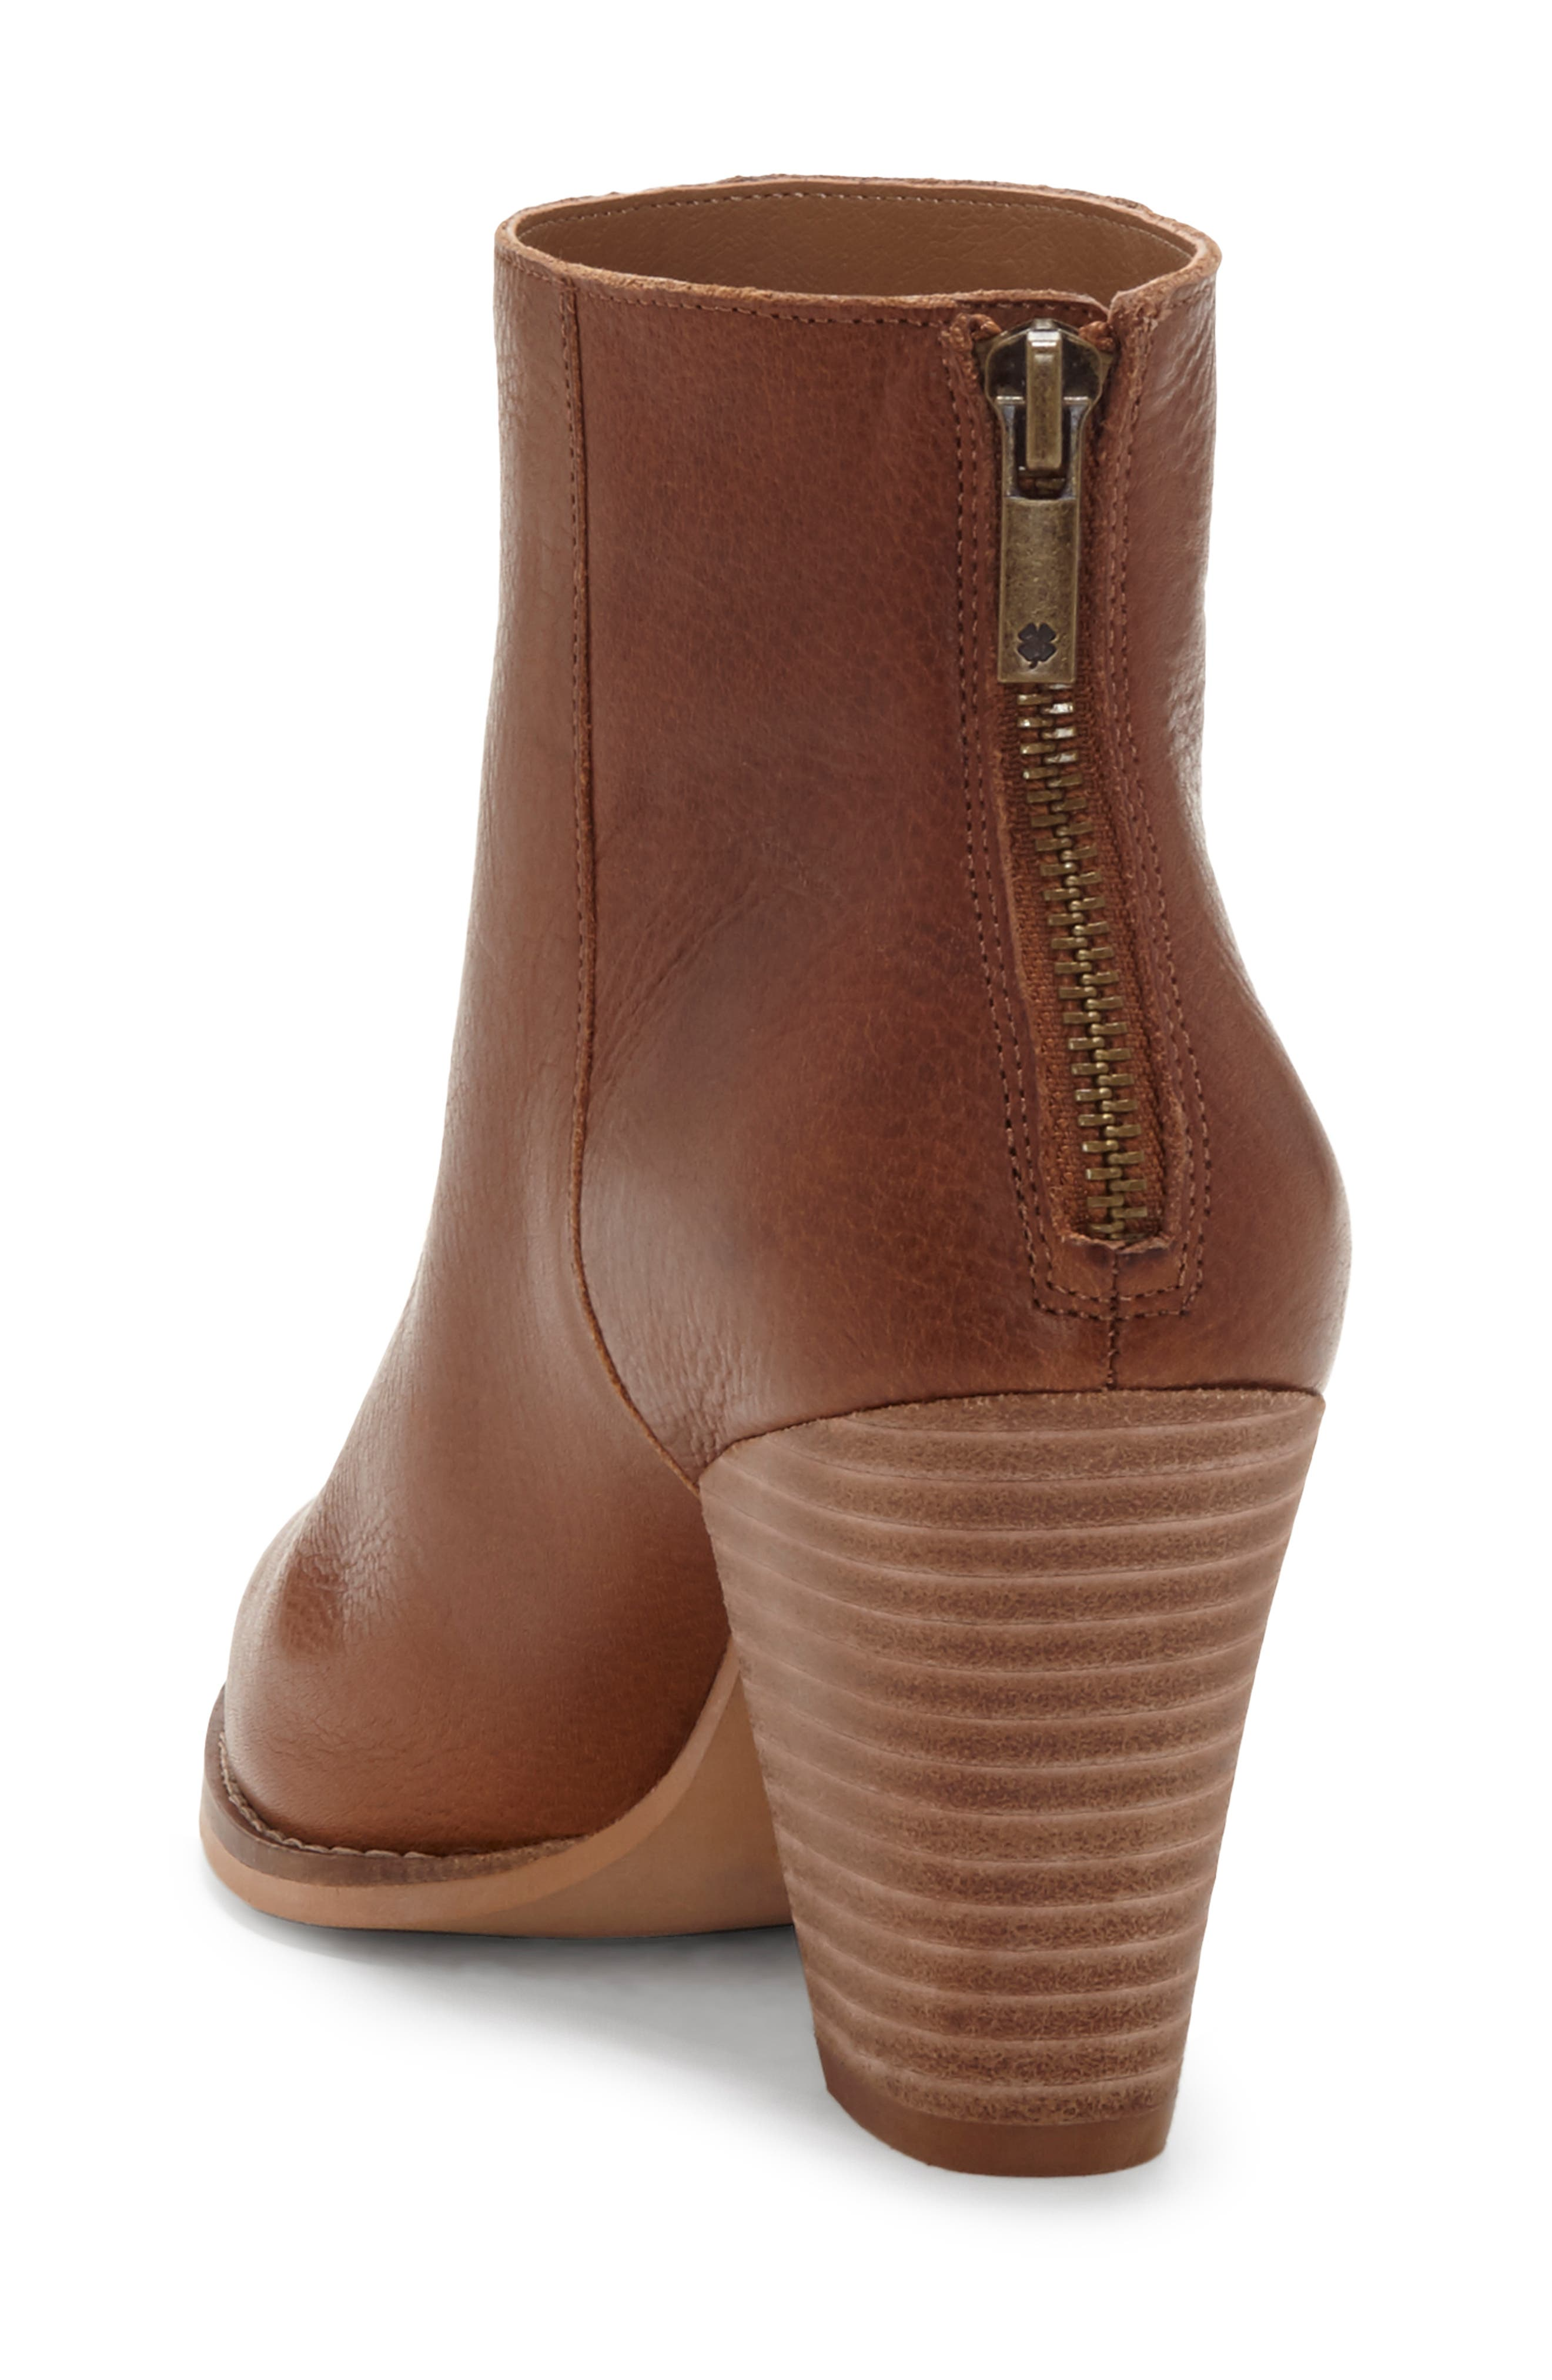 LUCKY BRAND, Adalan Bootie, Alternate thumbnail 2, color, MACAROON LEATHER